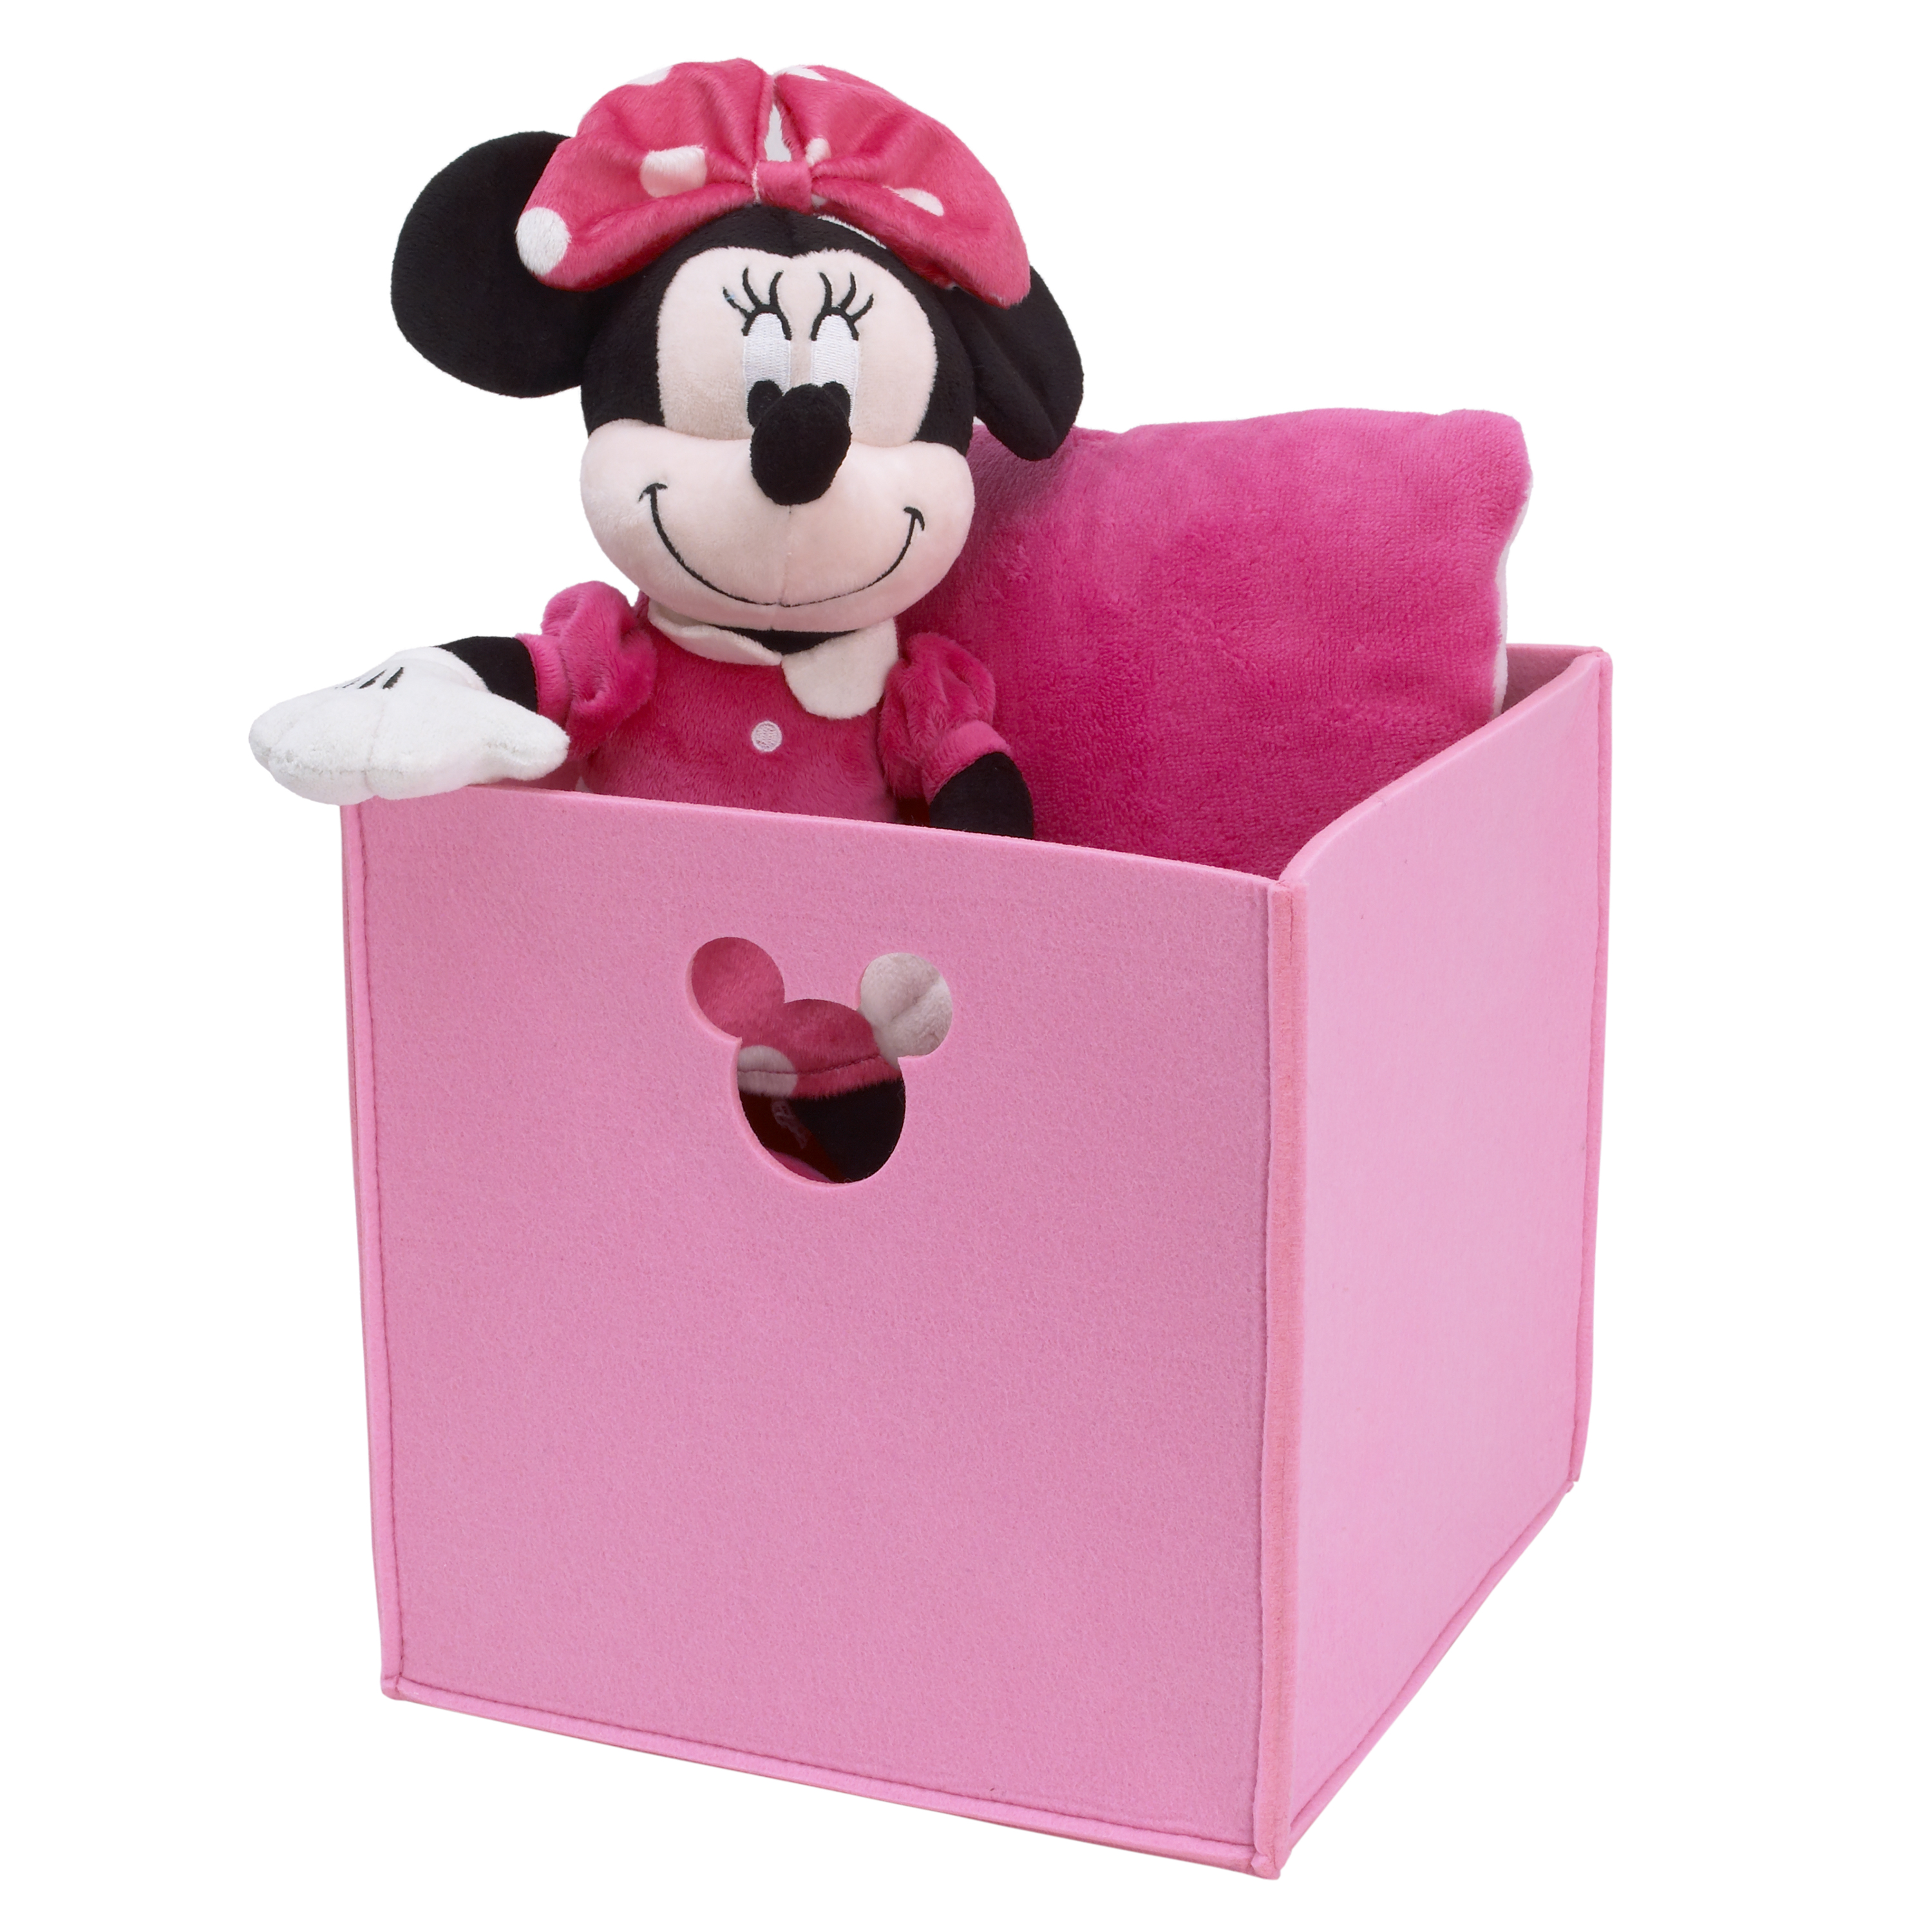 Disney Baby Minnie Mouse Pink Felt Storage Bin